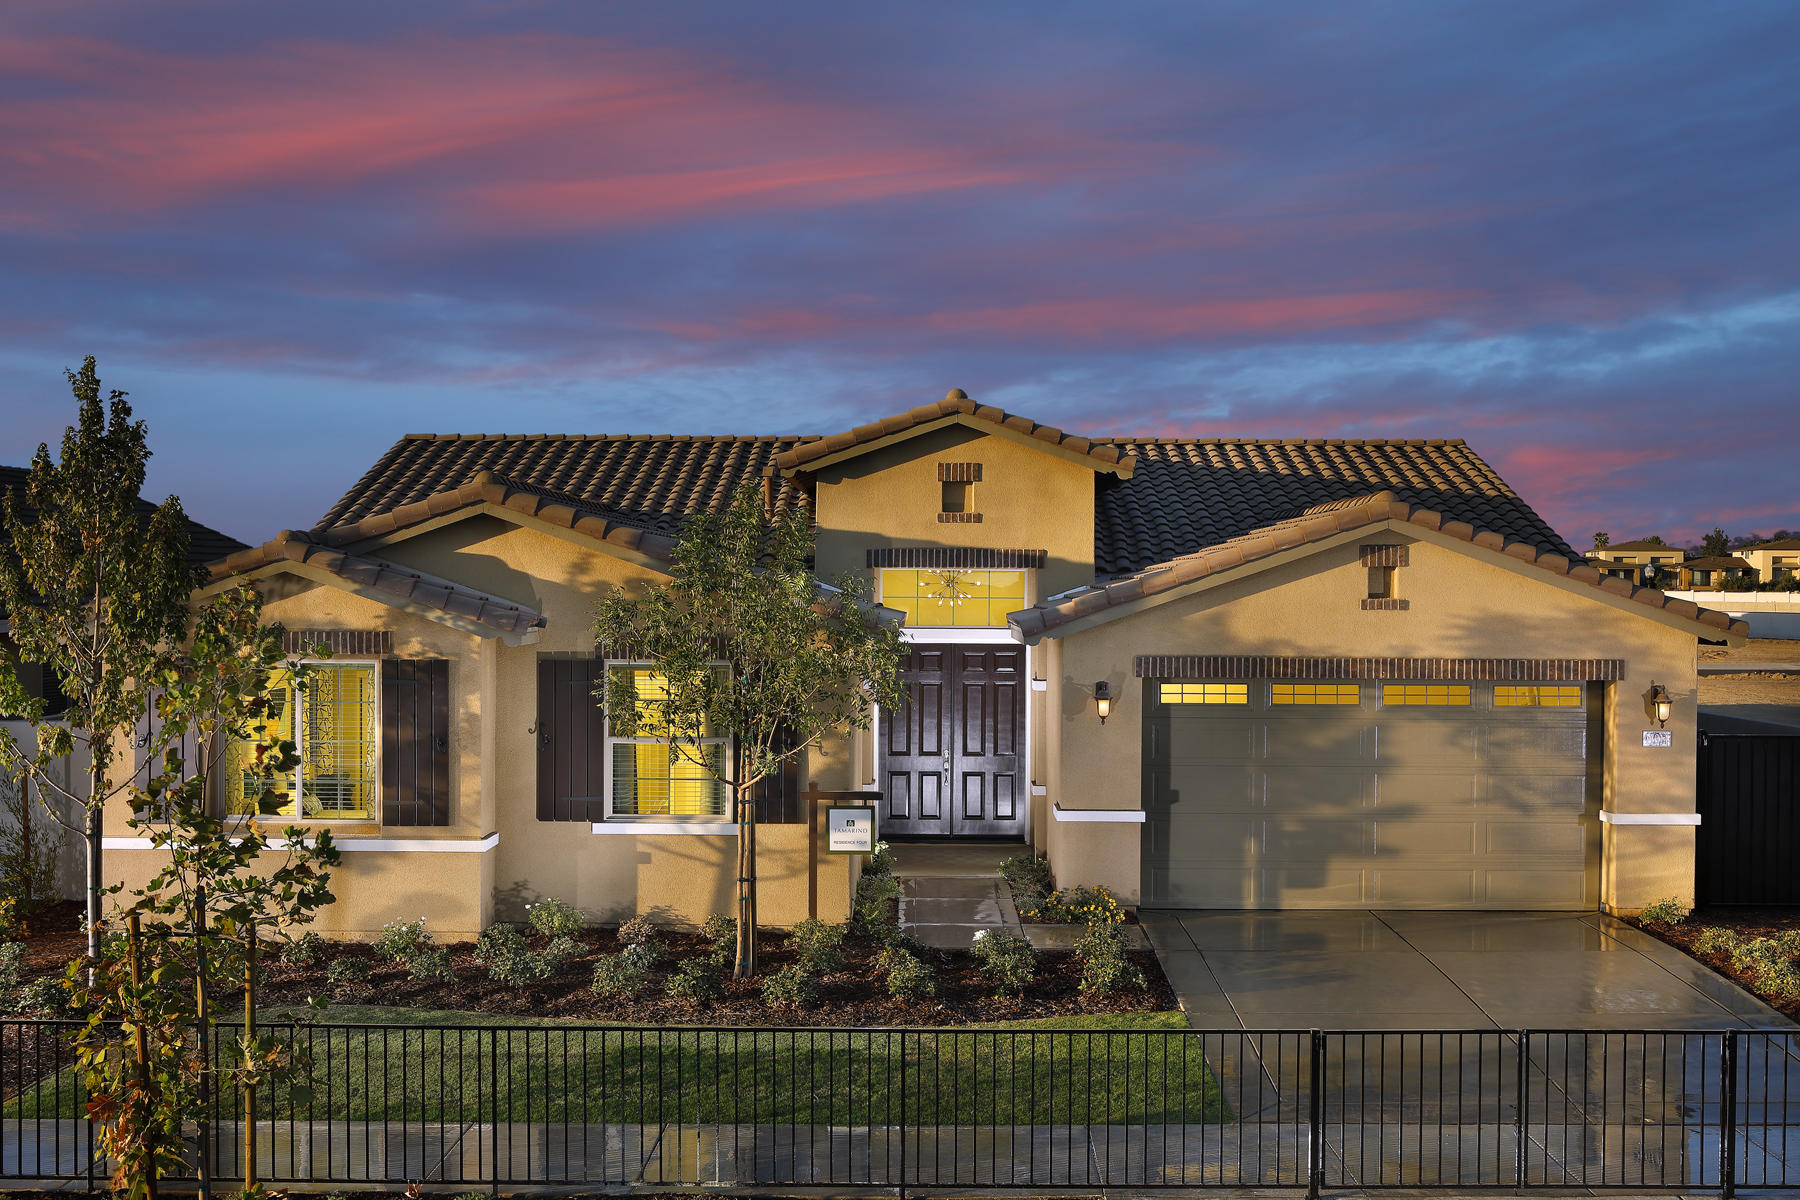 Homes For Sale In Bakersfield >> Tamarind At Belcourt Seven Oaks By Woodbridge Pacific Group New